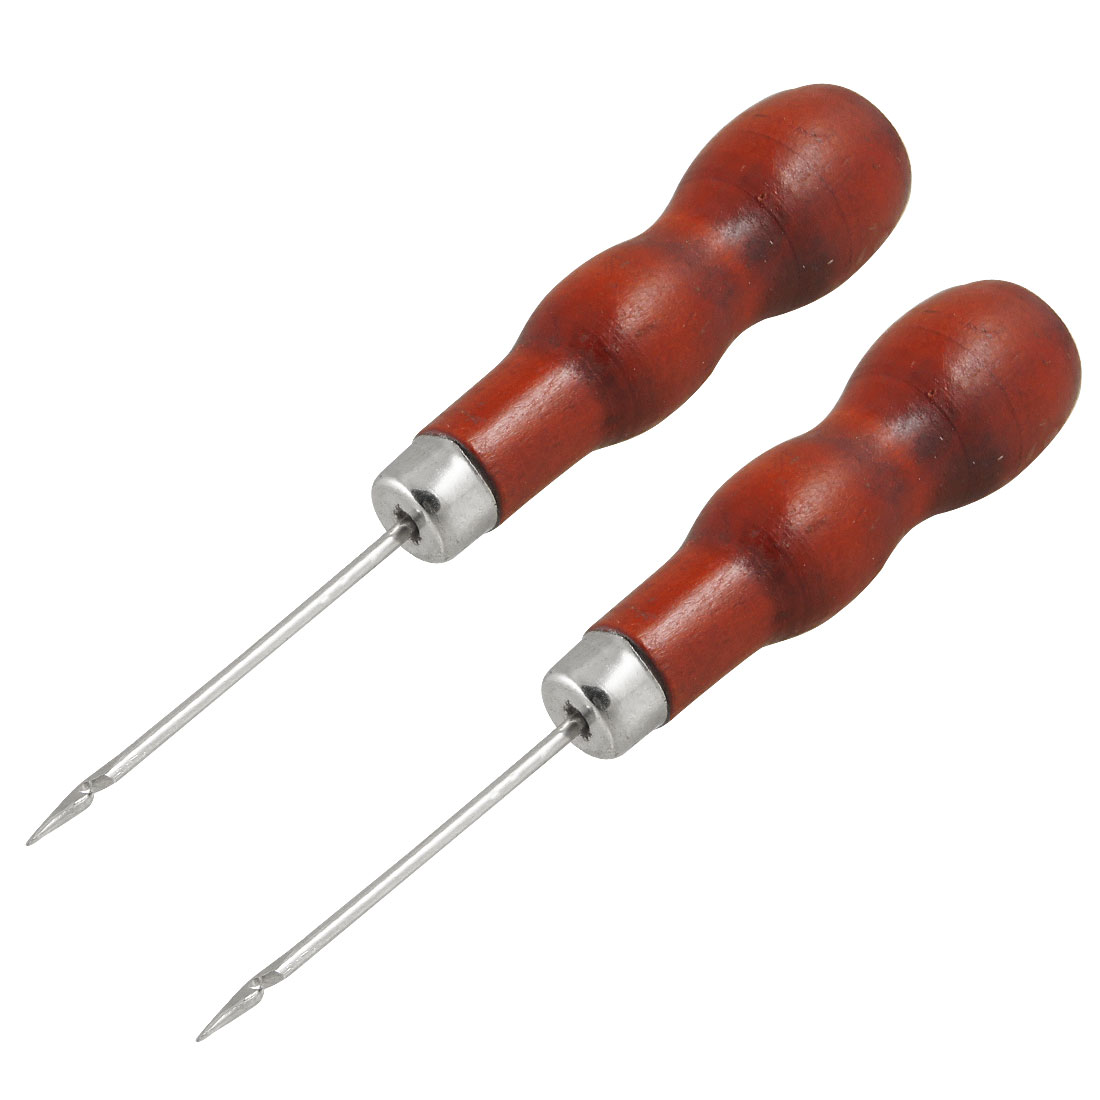 2 Pcs Red Nonslip Handle Leather Canvas DIY Sewing Awl Needle Tool